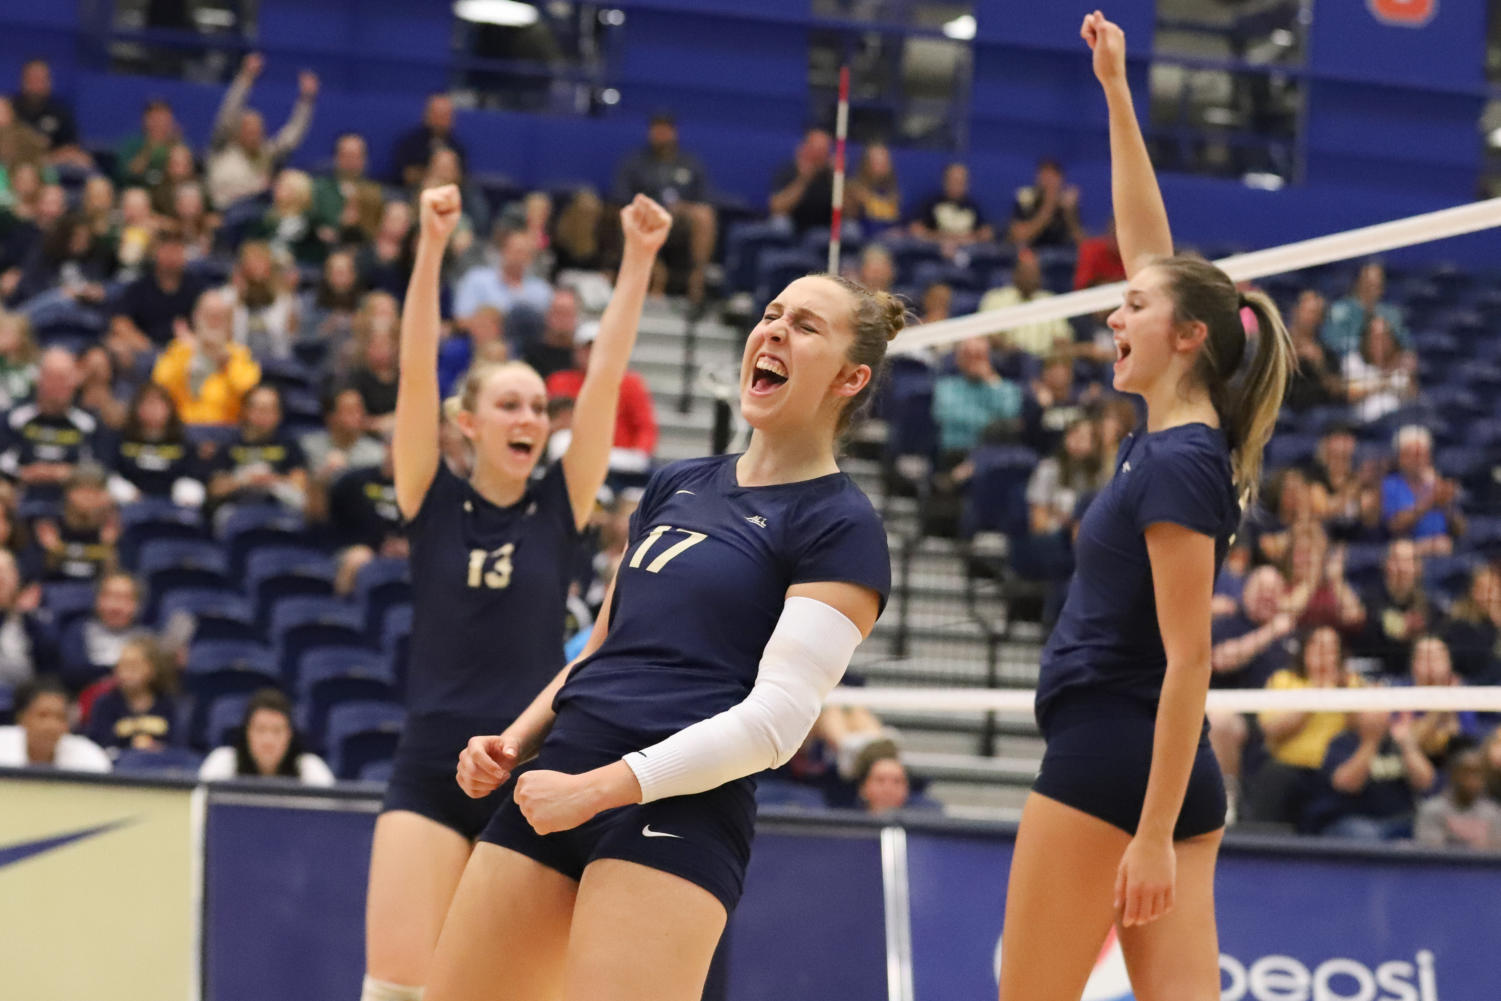 Juniors Stephanie Williams (left), Nika Markovic (center) and Layne Van Buskirk (right) all provide Pitt's volleyball team with valuable tournament experience.